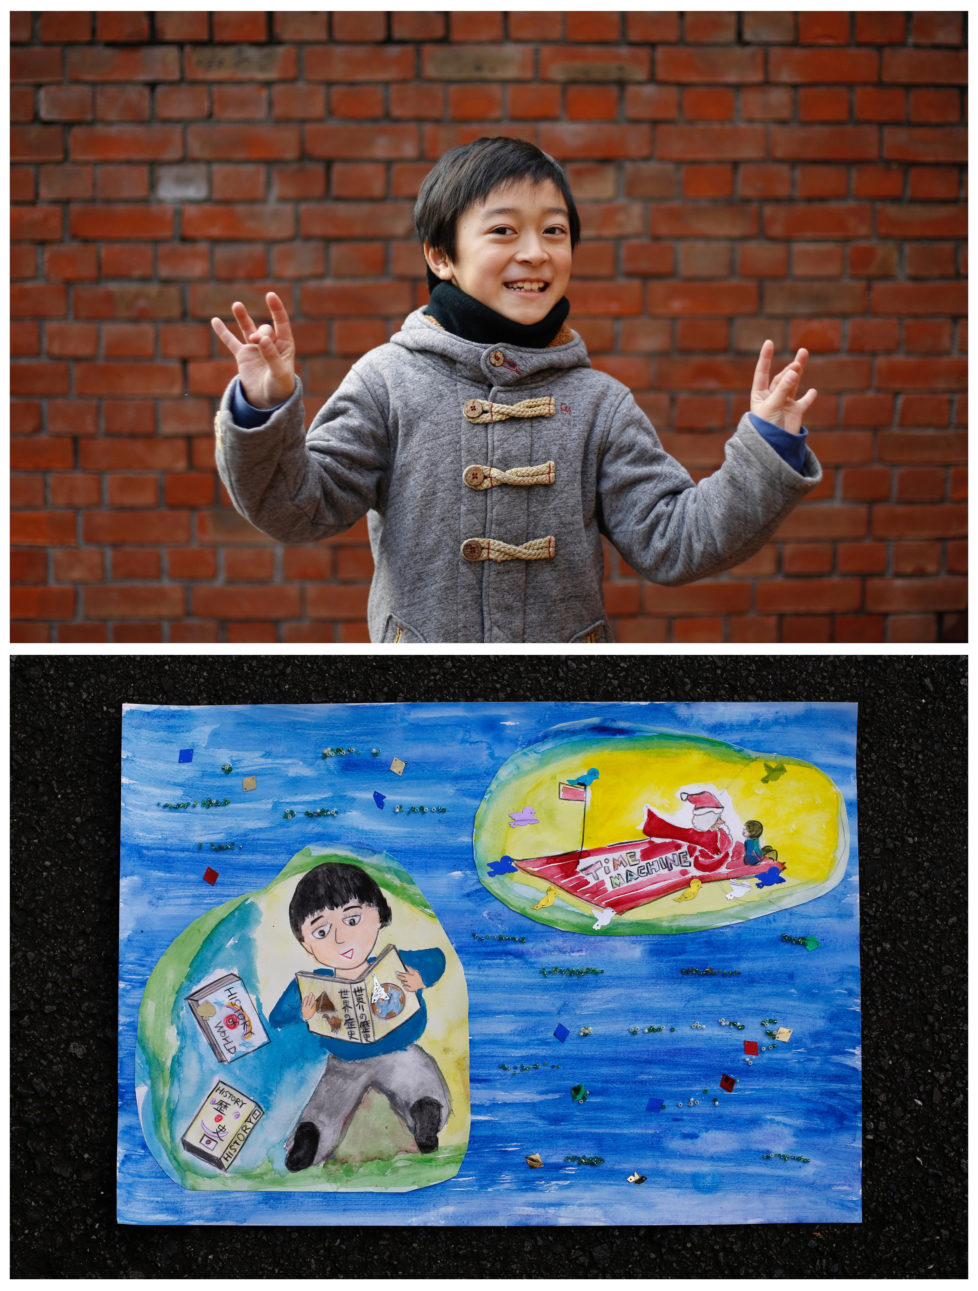 """A combination picture shows Natsuki Ariga, 9, posing for a photograph at a library (top) and his drawing of what he wants to get for Christmas from Santa, in Tokyo, Japan December 1, 2016. Natsuki wants to get comic books on Japanese and world history. """"Santa gives me a present every year for working hard. That's why I practice Electone (Yamaha's electronic organ), abacus and track and field very hard, """" he said. Reuters photographers around the world asked children to draw what they wanted to receive from Santa for Christmas. REUTERS/Toru Hanai SEARCH """"CHRISTMAS WISHES"""" FOR THIS STORY. SEARCH """"WIDER IMAGE"""" FOR ALL STORIES. - RTSV35U"""